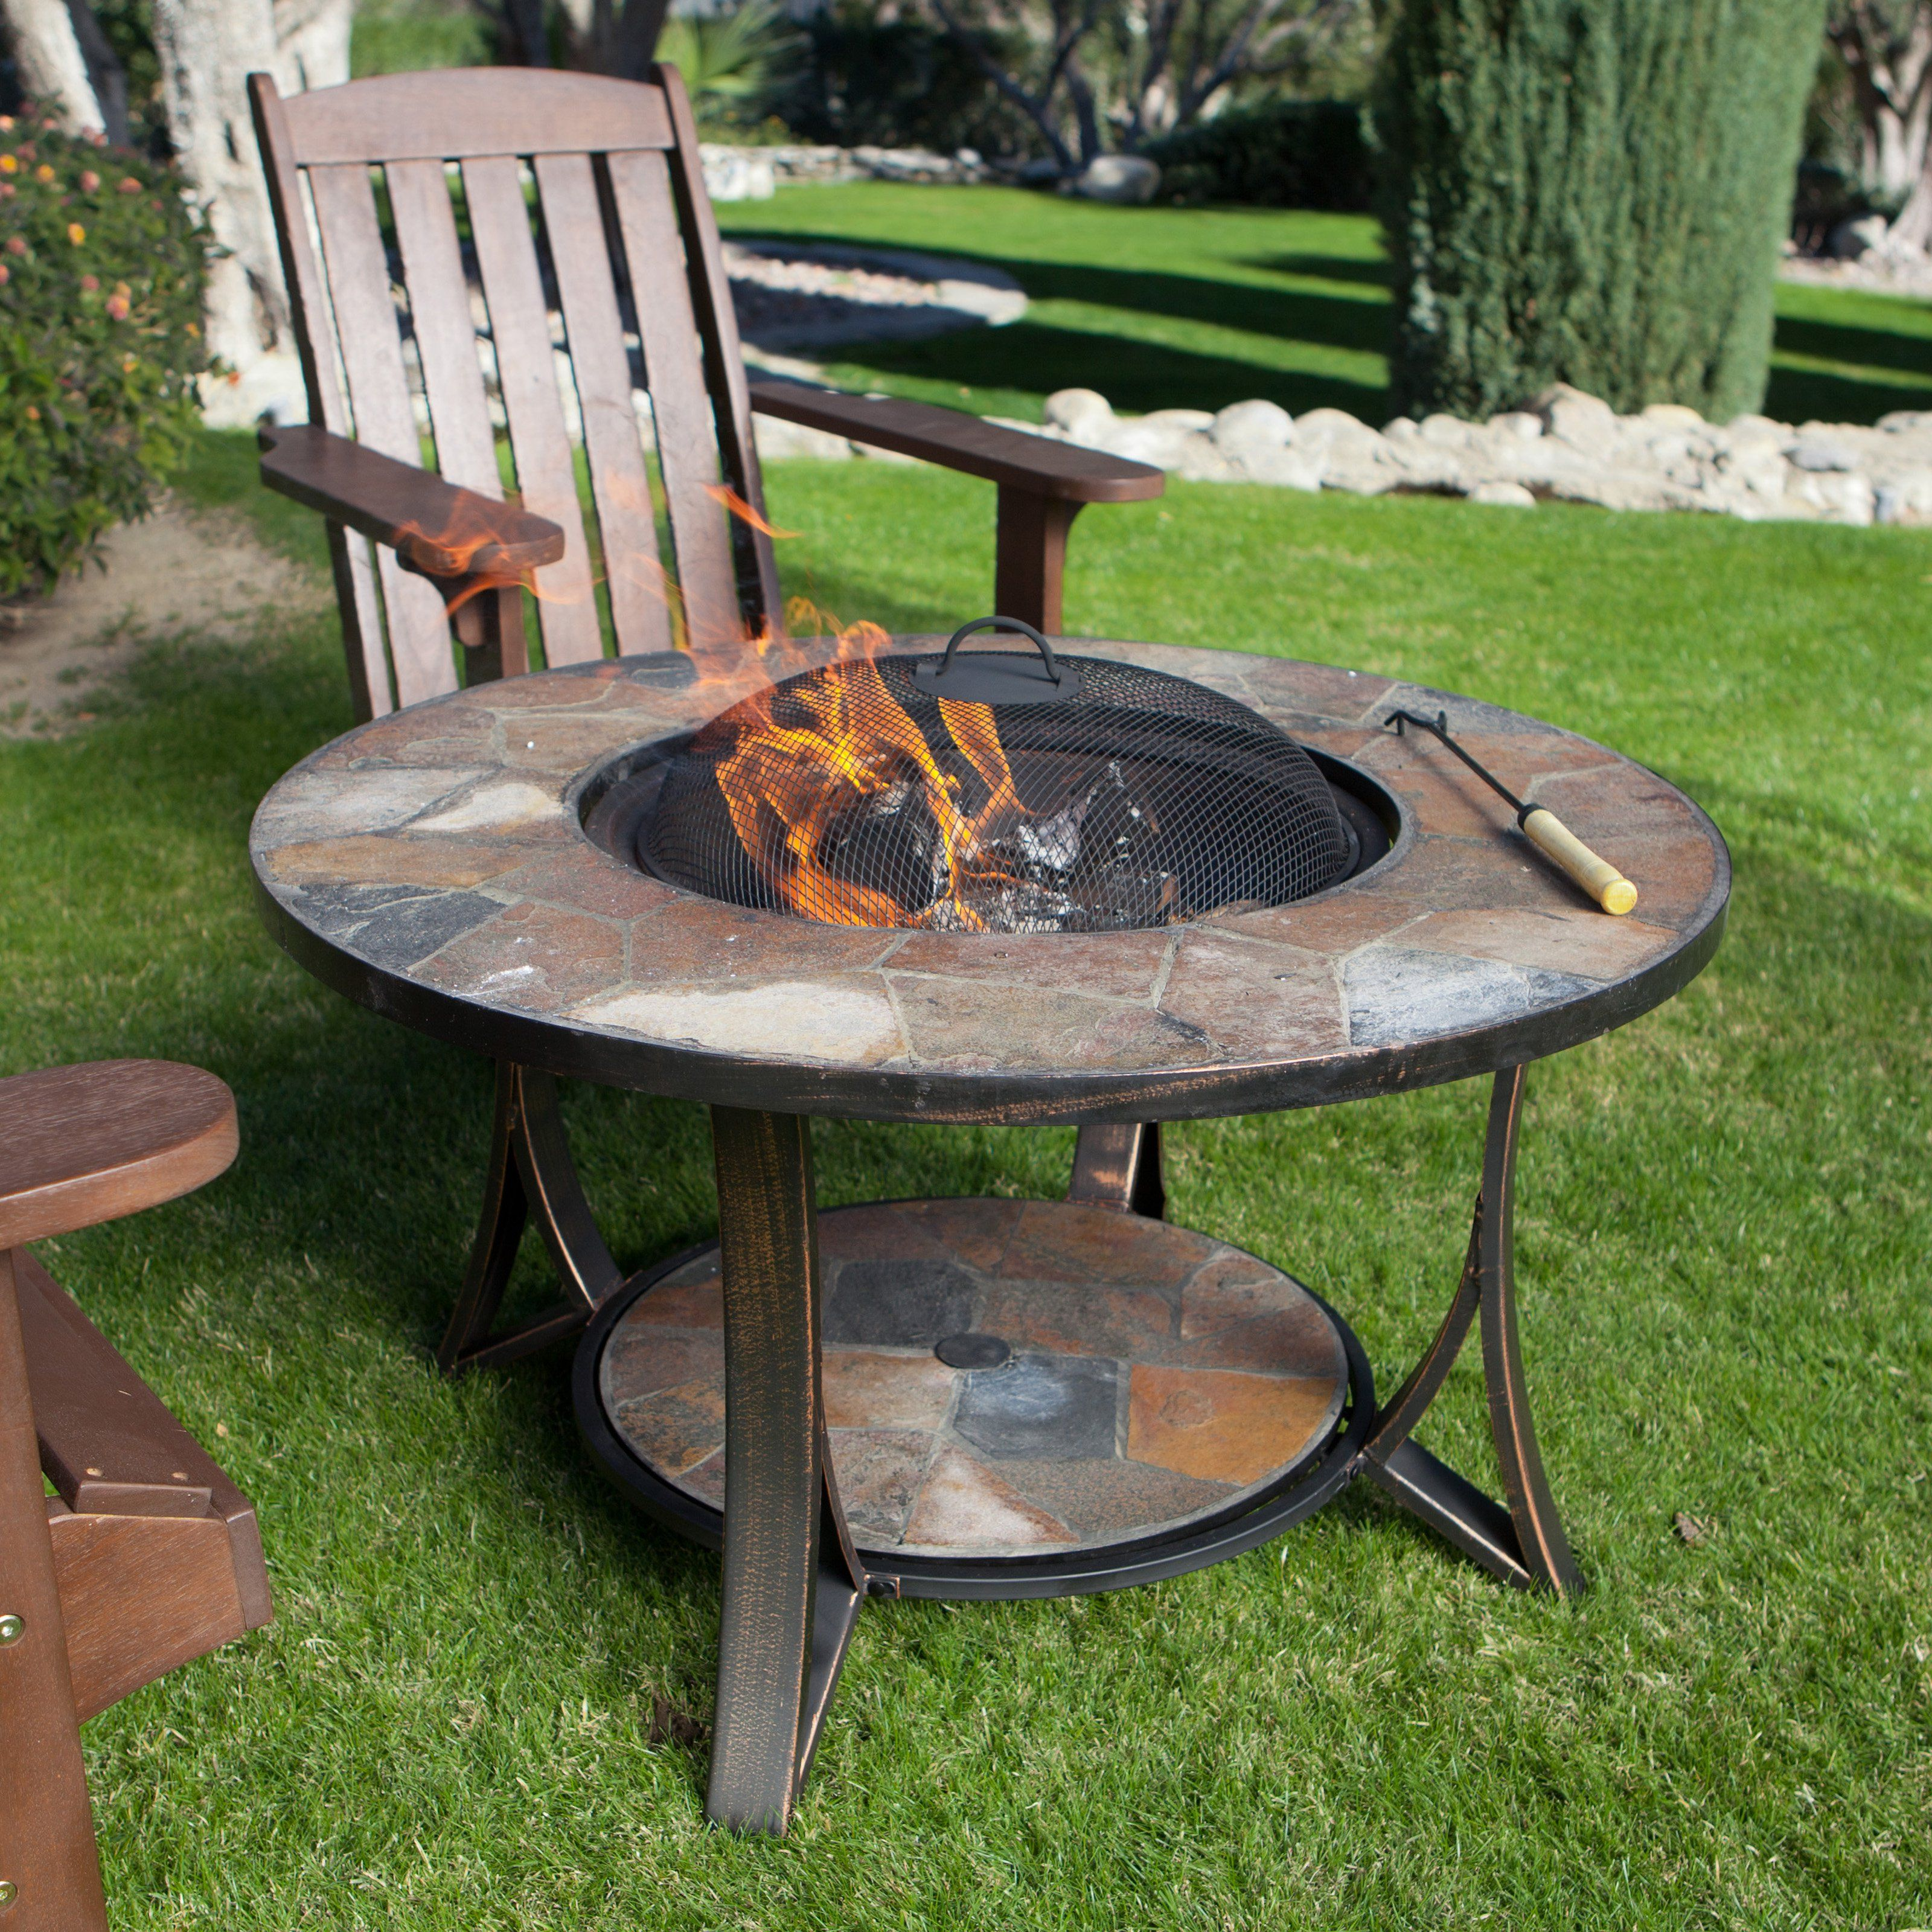 Arizona Sands II Fire Pit Table With FREE Cover The Arizona Sands - Wrought iron fire pit table